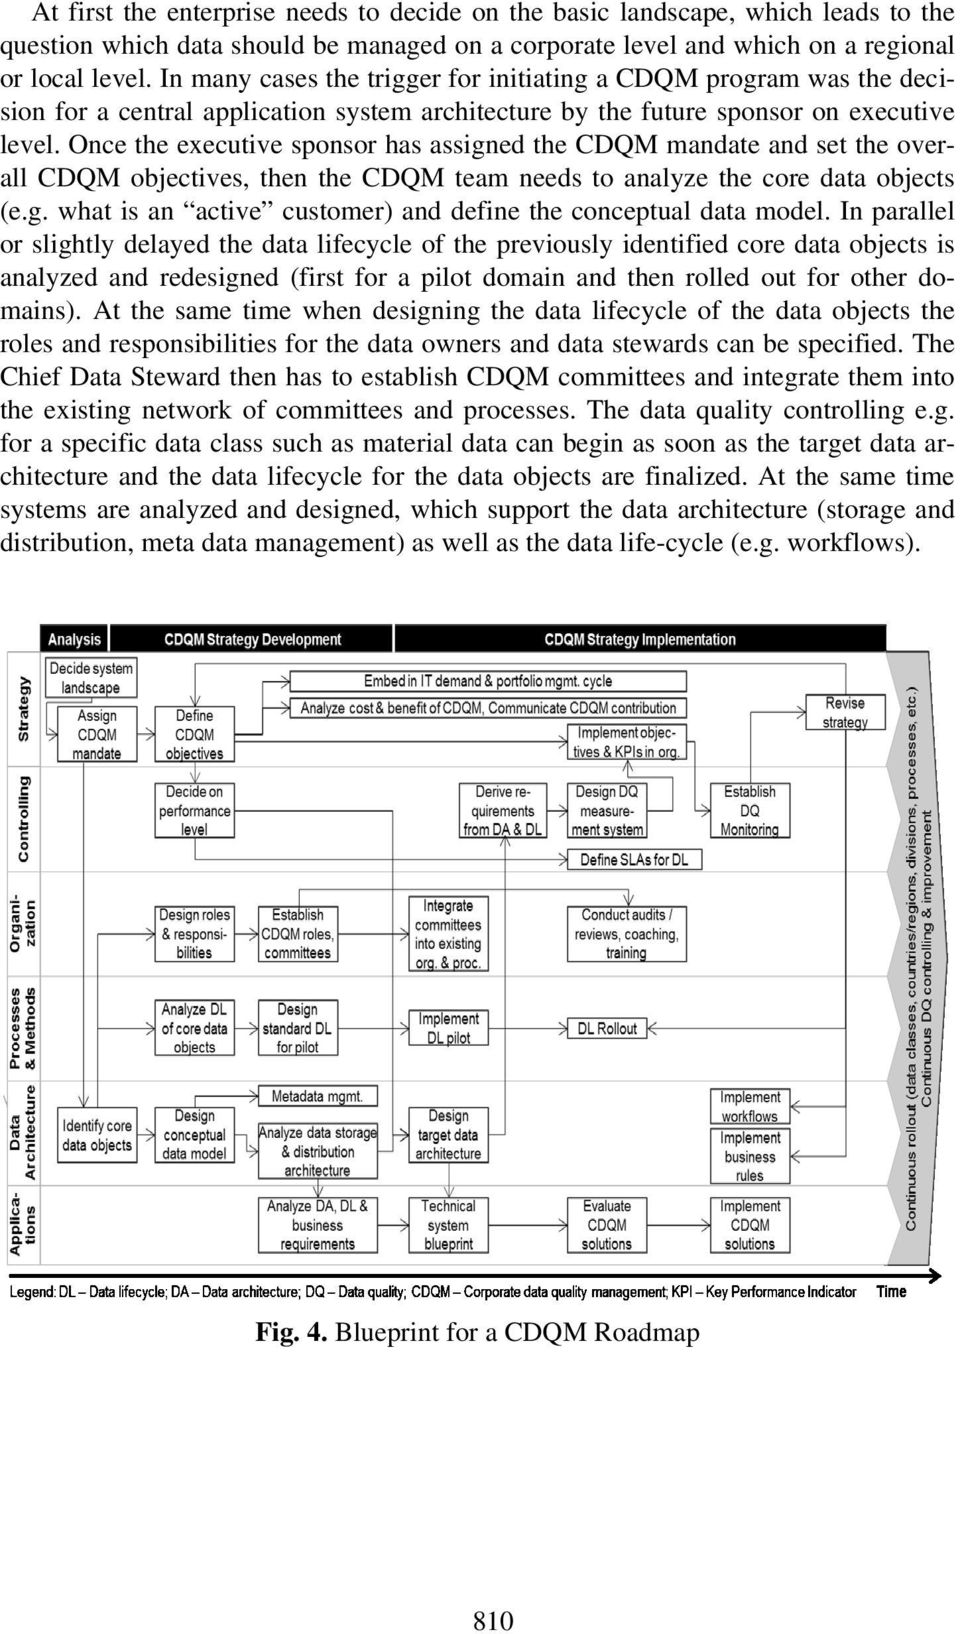 Once the executive sponsor has assigned the CDQM mandate and set the overall CDQM objectives, then the CDQM team needs to analyze the core data objects (e.g. what is an active customer) and define the conceptual data model.